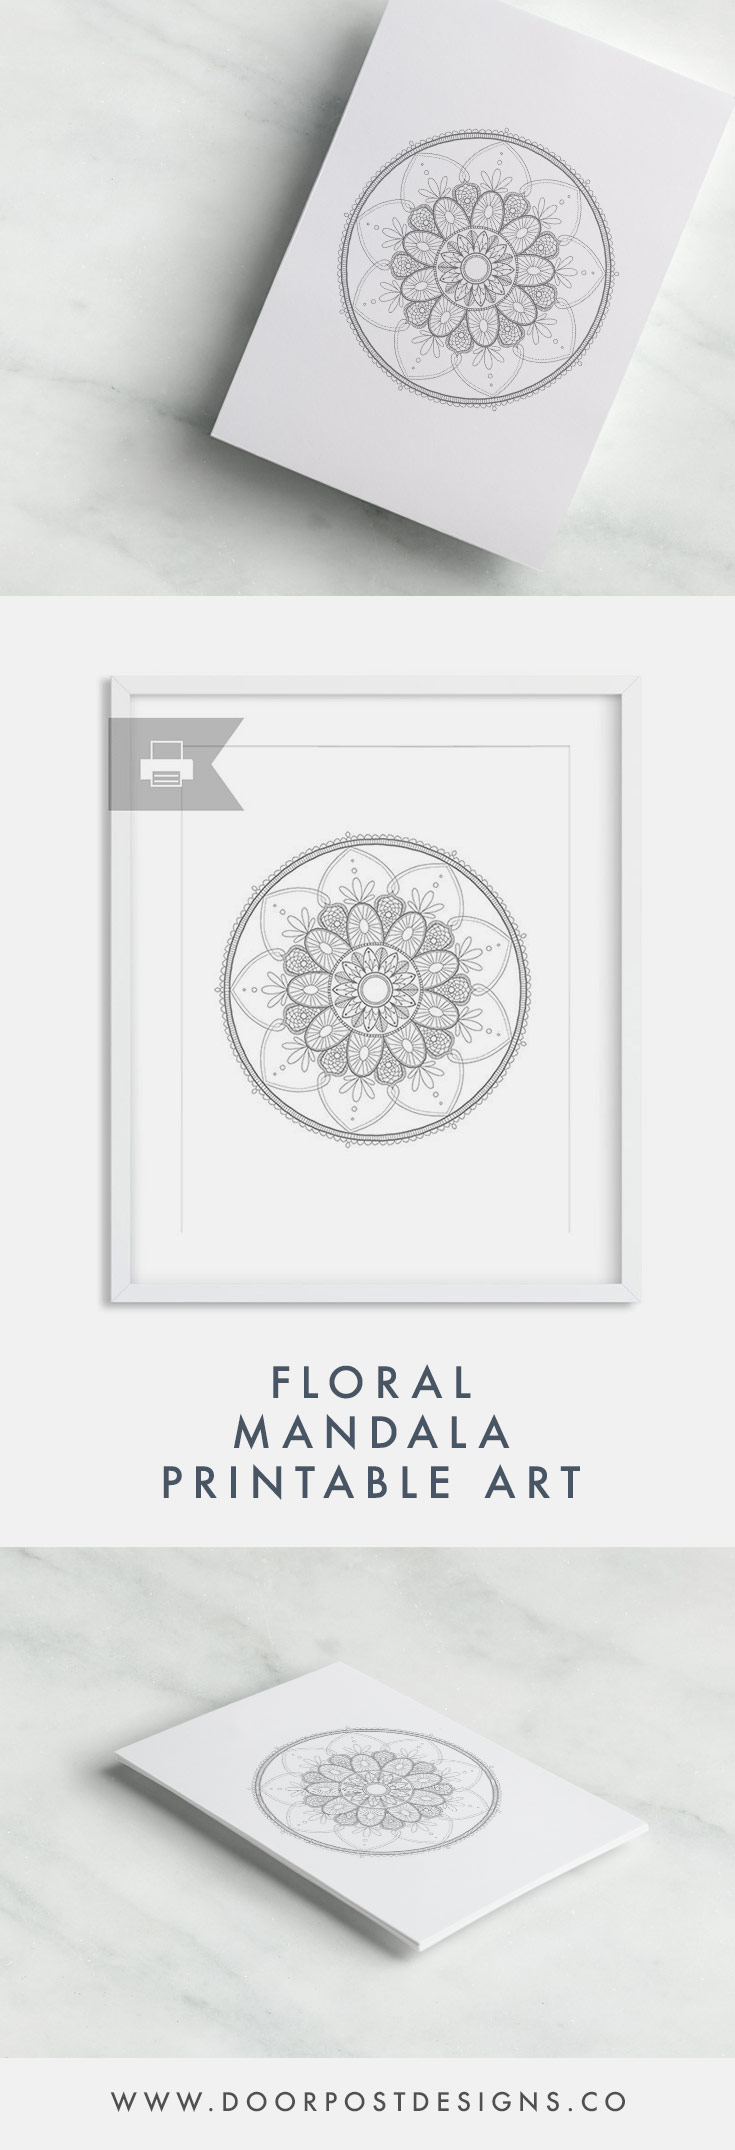 Hand-Drawn Floral Mandala Printable | Decorate from the comfort of your own home! The digital file will be sent to your email inbox upon purchase; you will receive a high-resolution JPG and a PDF for printing on your own.